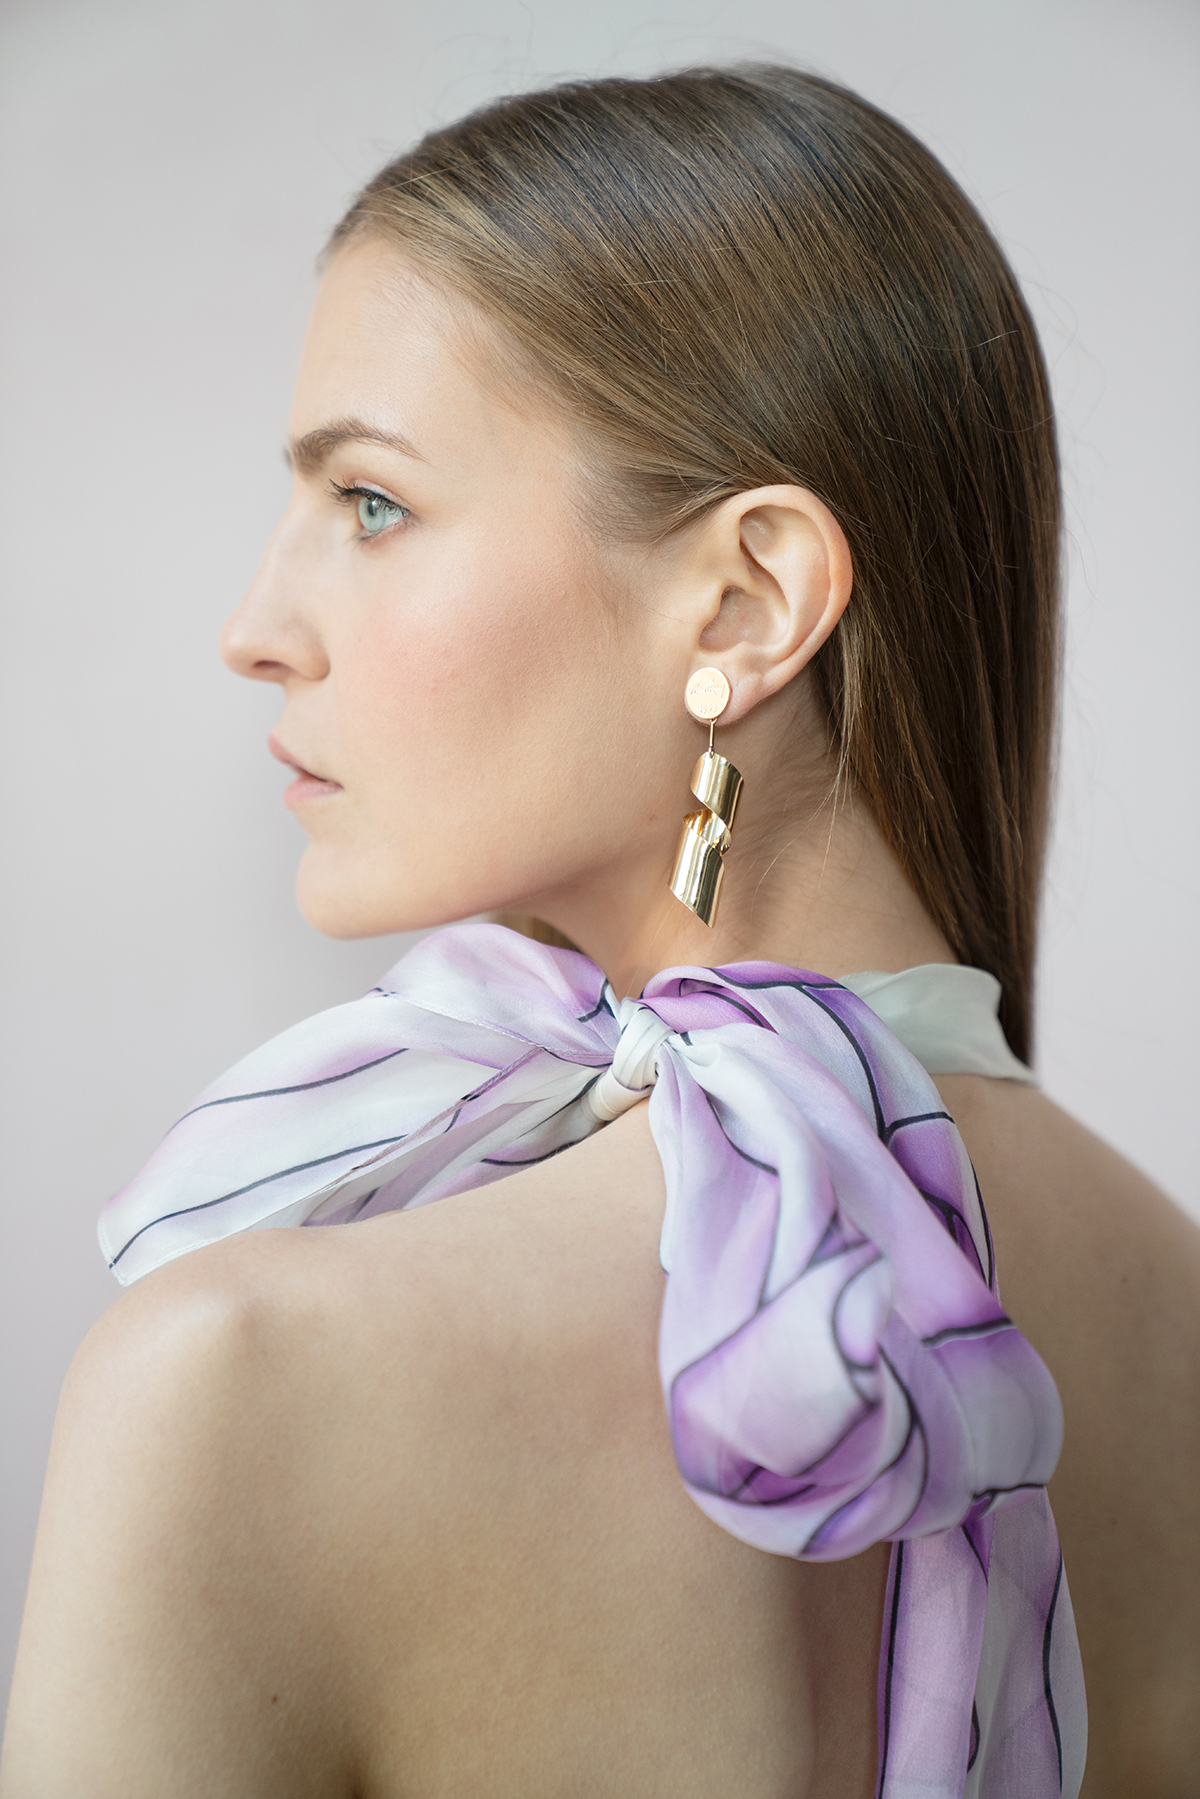 Renee Peters wears the Lampshade earrings in 18kt Fairmined Ecological gold for the Pure Earth Auction.